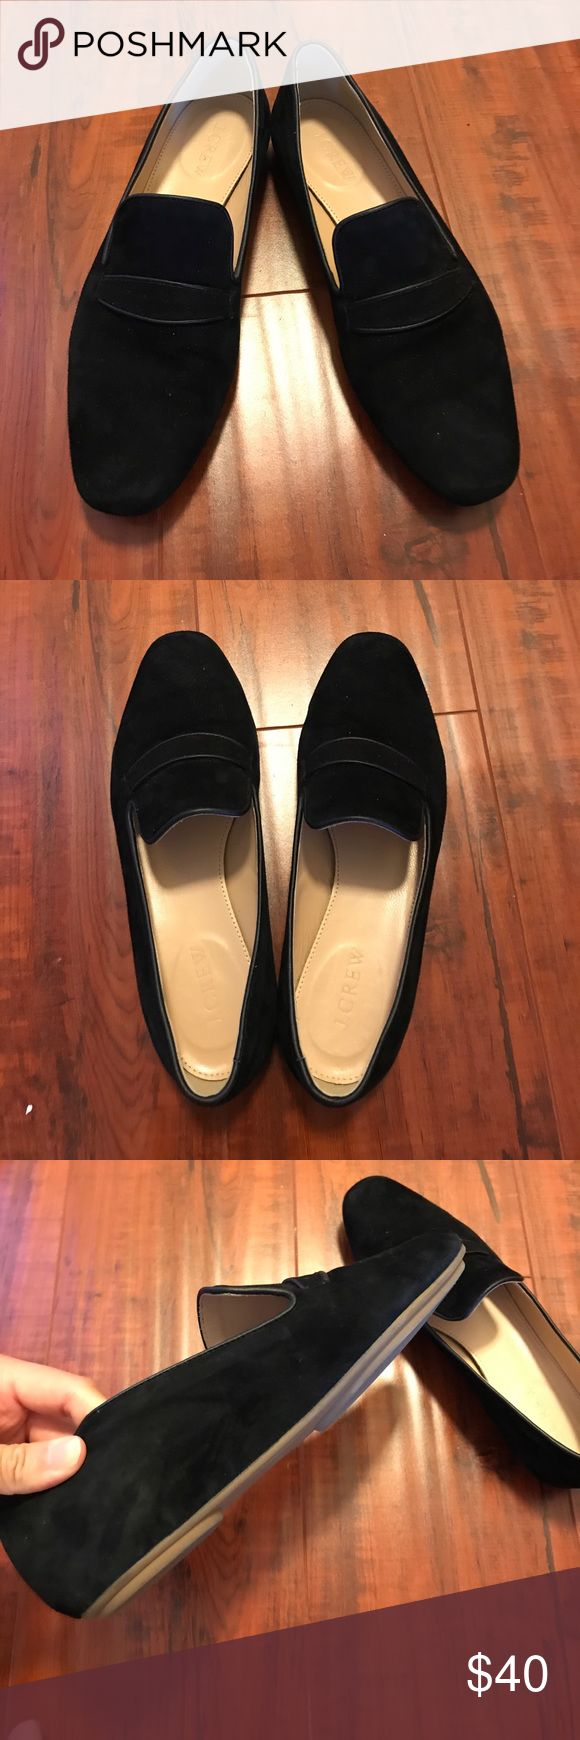 Worn Once - Jcrew Black Suede Loafers Like new condition - super soft, penny suede loafers J. Crew Shoes Flats & Loafers